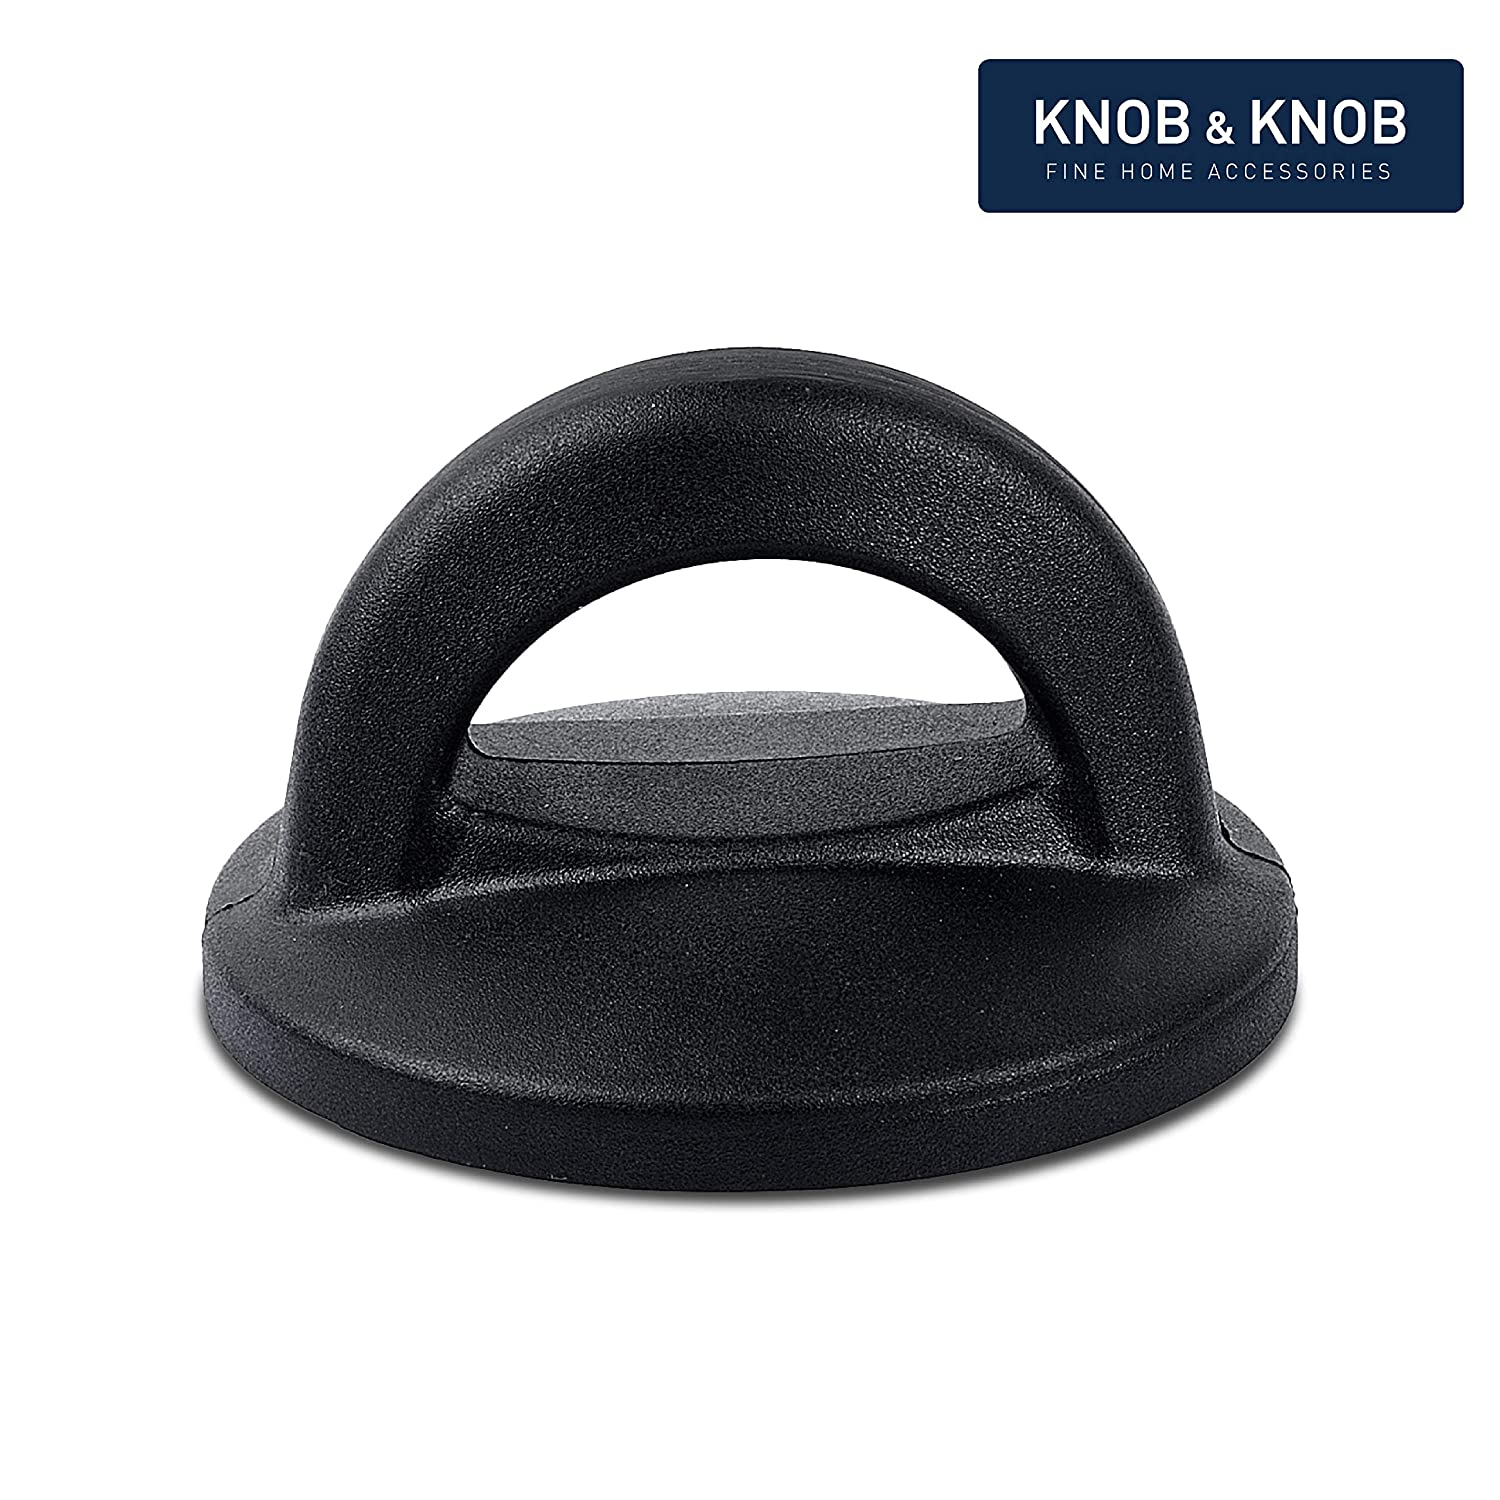 Universal Pot Lid Replacement Knobs Pan Lid Holding Handles (1 Pack)